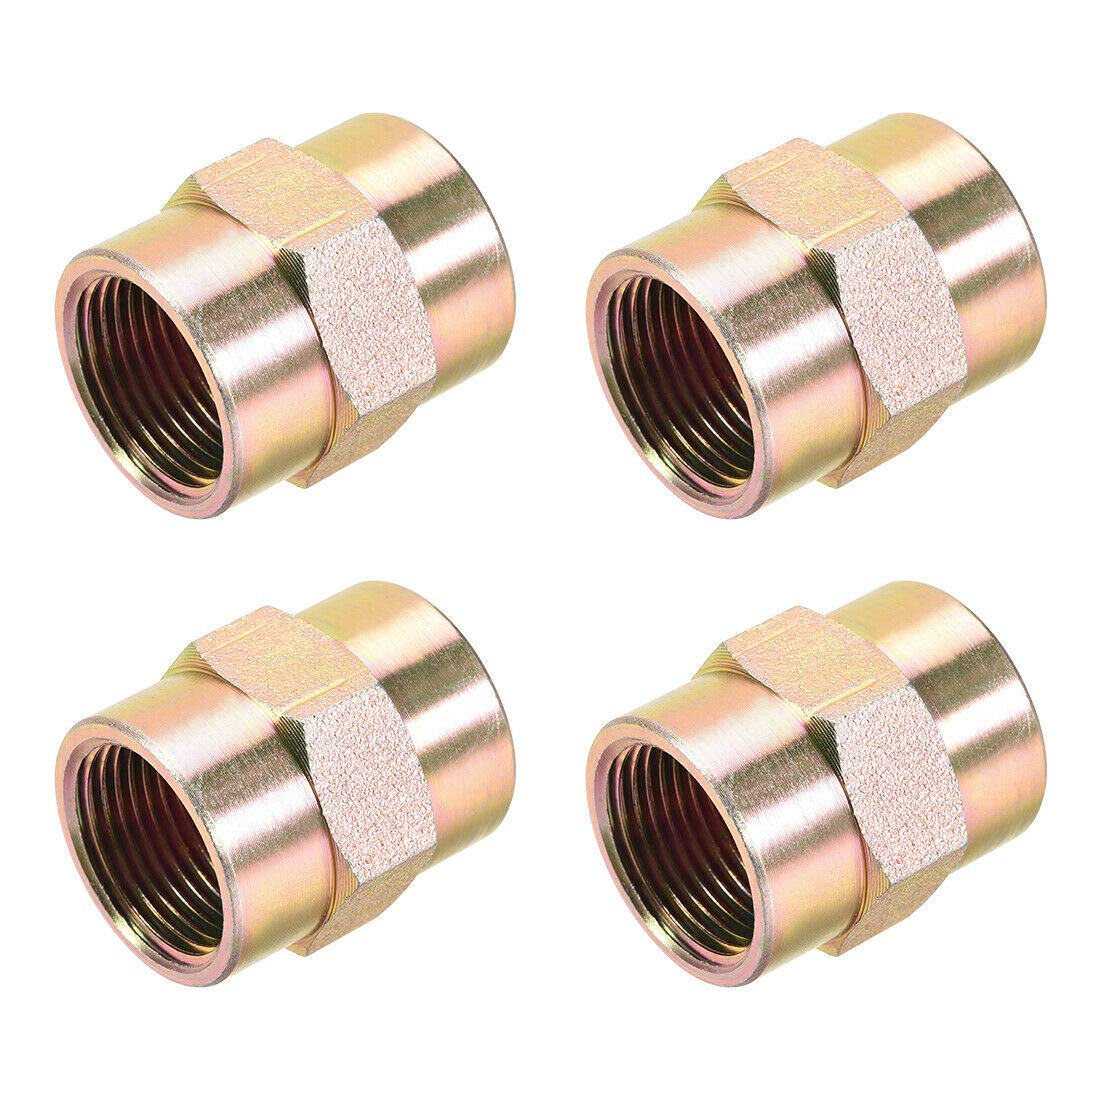 Pipe Fittings Fitting Connector Hex PT Coupling 4 Female Large special price 3 Long-awaited